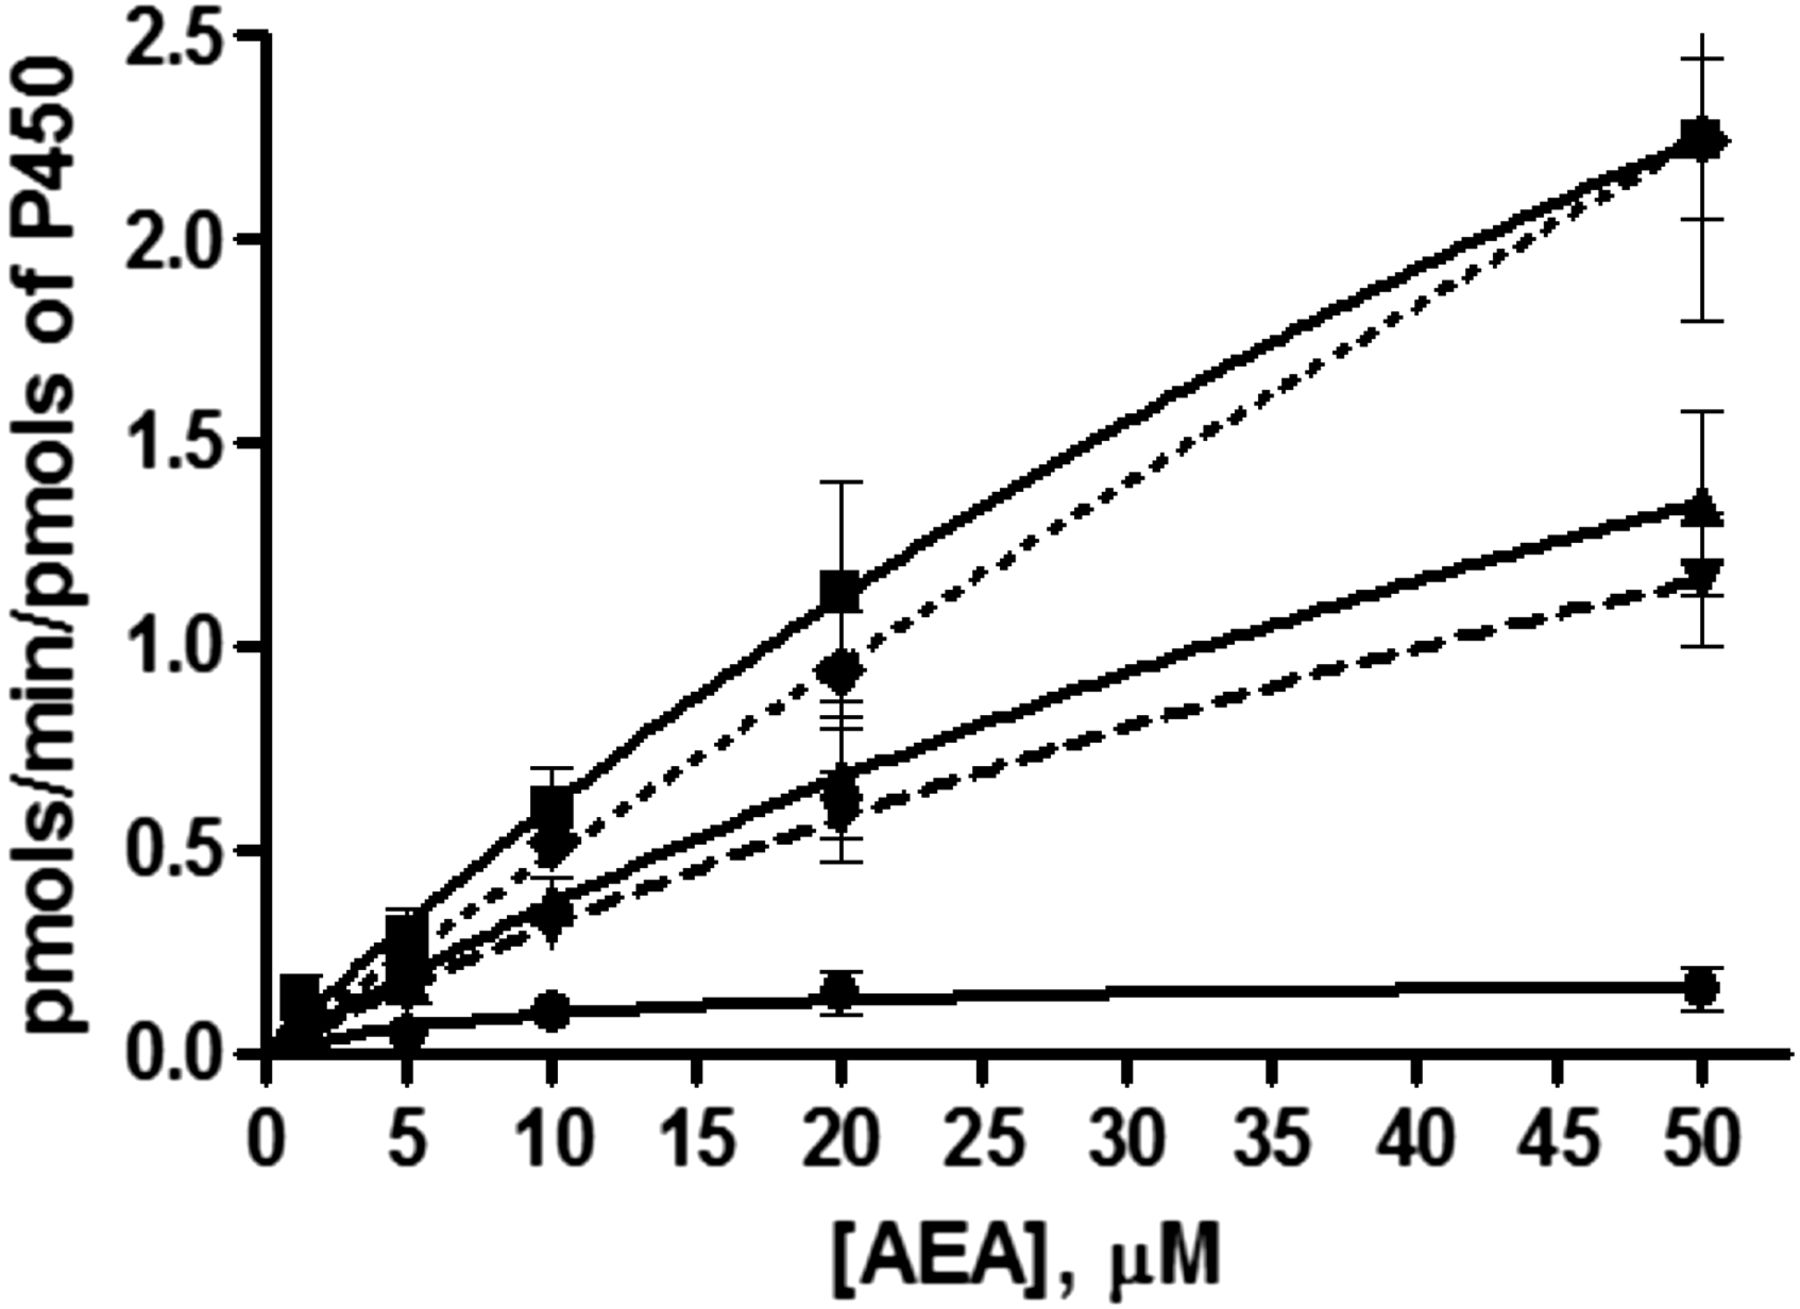 Metabolism of anandamide by human cytochrome p450 2j2 in the download figure biocorpaavc